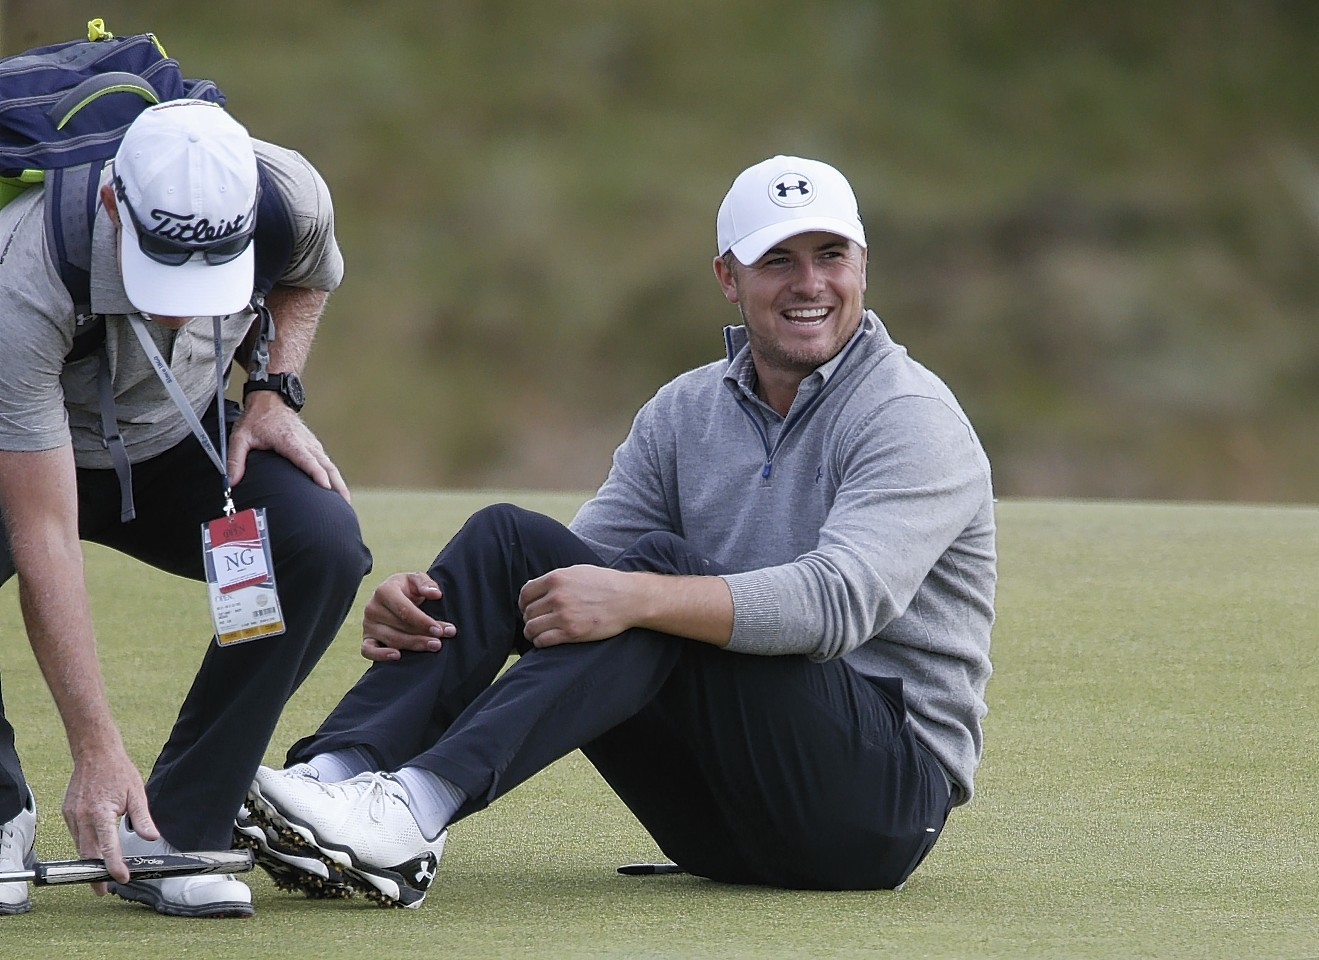 Jordan Spieth misses a putt but manages to see the funny side as he collapses to the ground